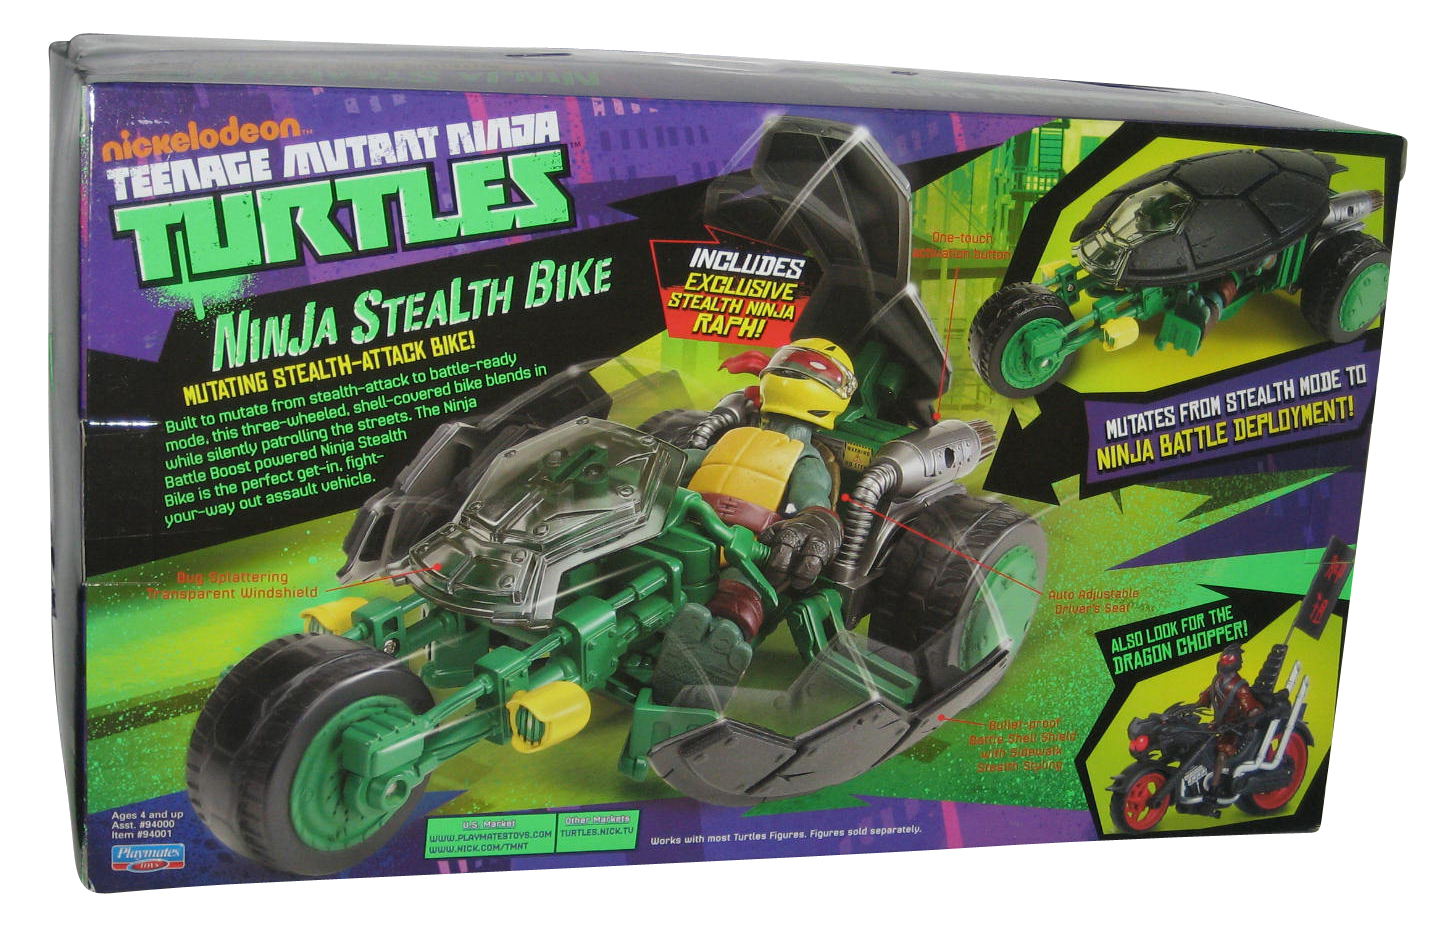 Teenage Mutant Ninja Turtles Ninja Stealth Bike mutation Stealth Bike Ralph NEUF